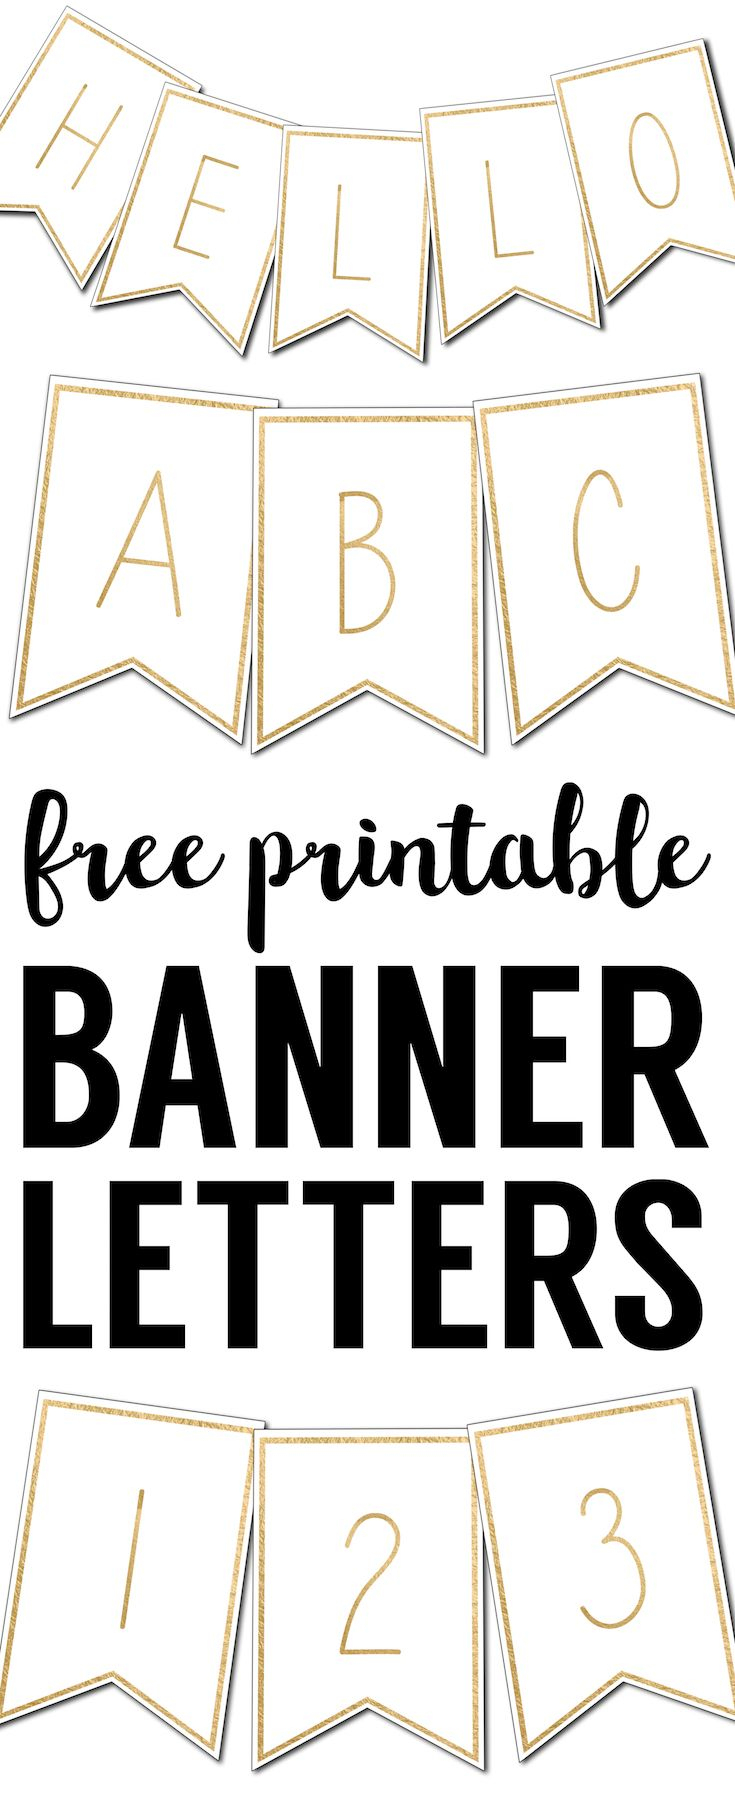 Free Printable Banner Letters Templates | Krštenje | Pinterest - Printable Banner Letters Template Free